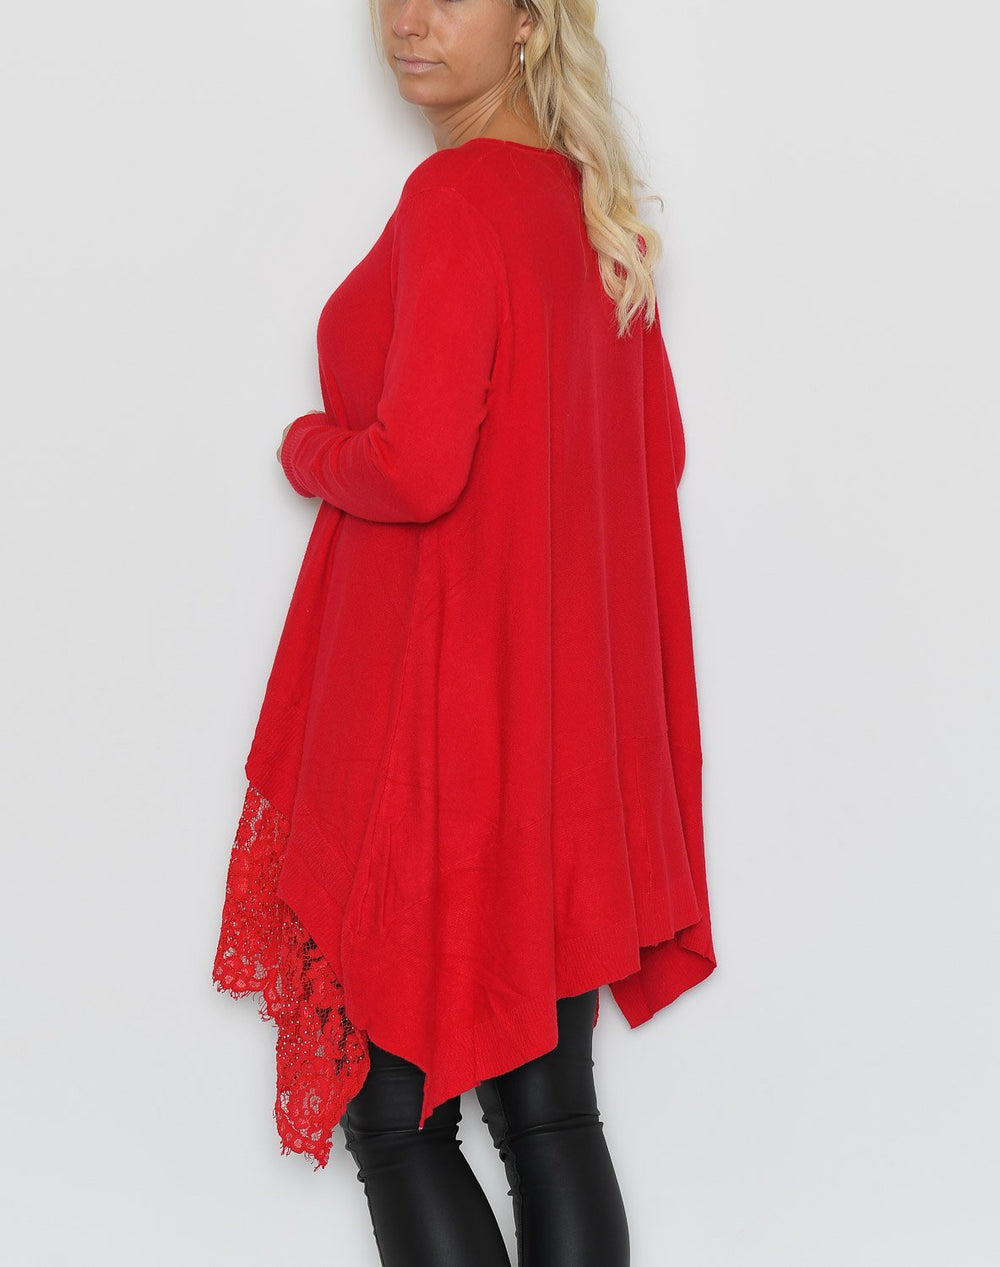 Paulina dress red - Online-Mode